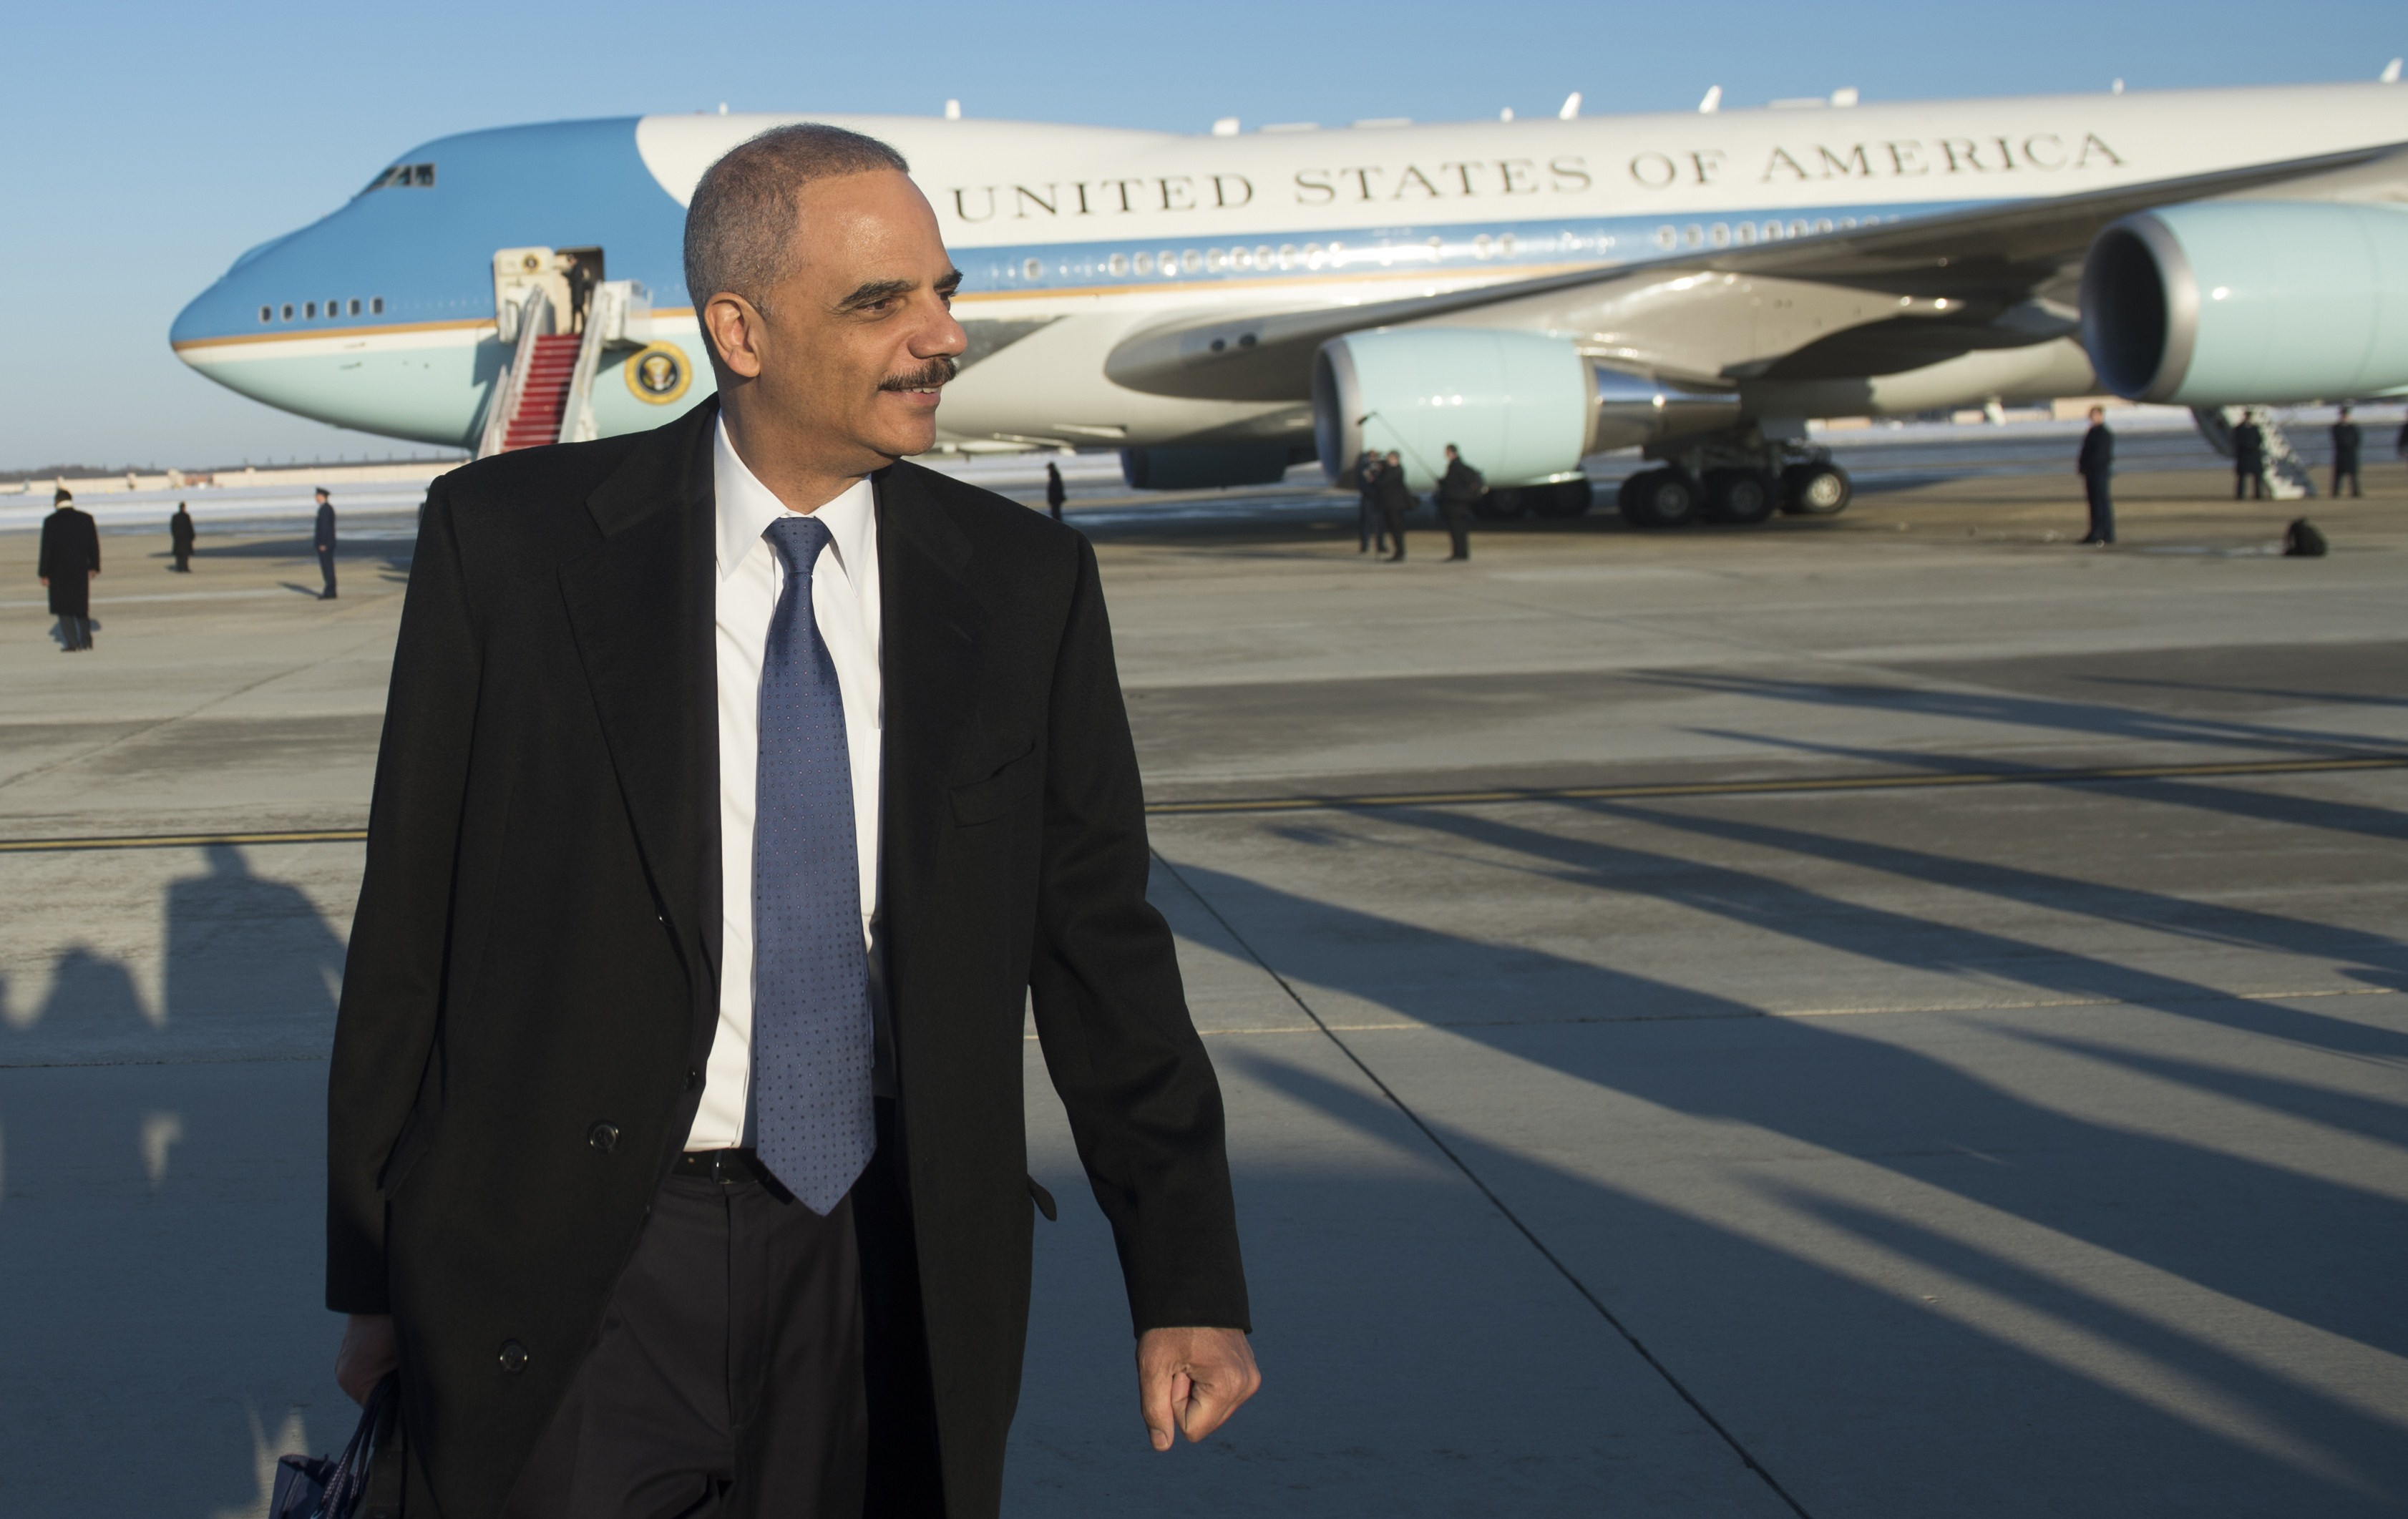 Attorney General Eric Holder walks from Air Force One after arriving with US President Barack Obama at Andrews Air Force Base in Maryland, March 6, 2015.